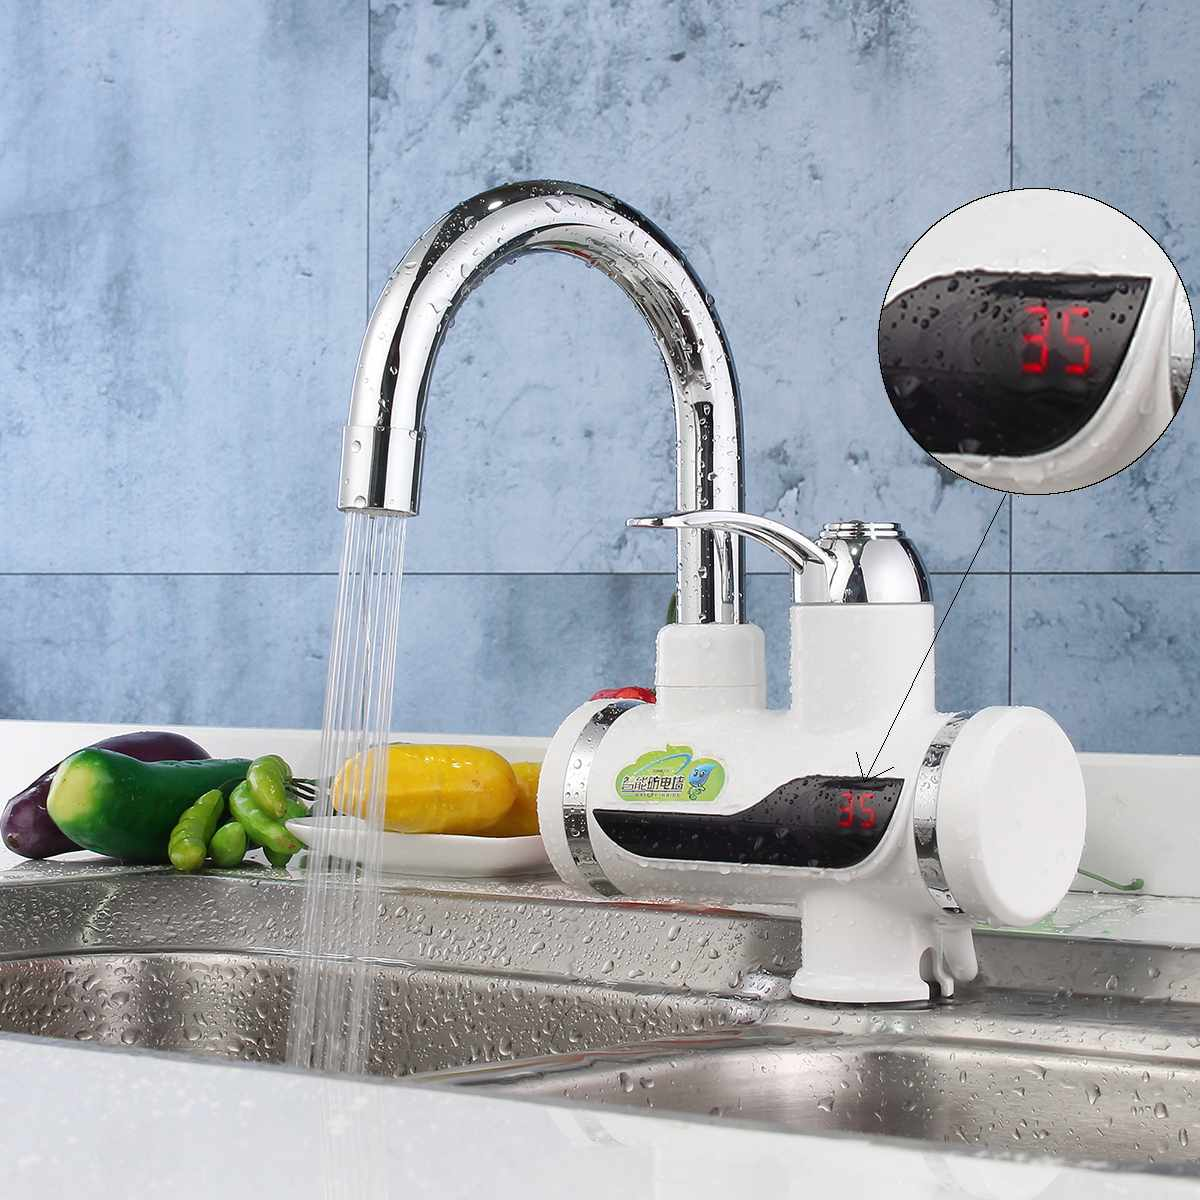 220V 3000W Electric Water Heater Kitchen Faucet Tankless Instant Heating Kitchen Mixer Tap Household LED Digital Display